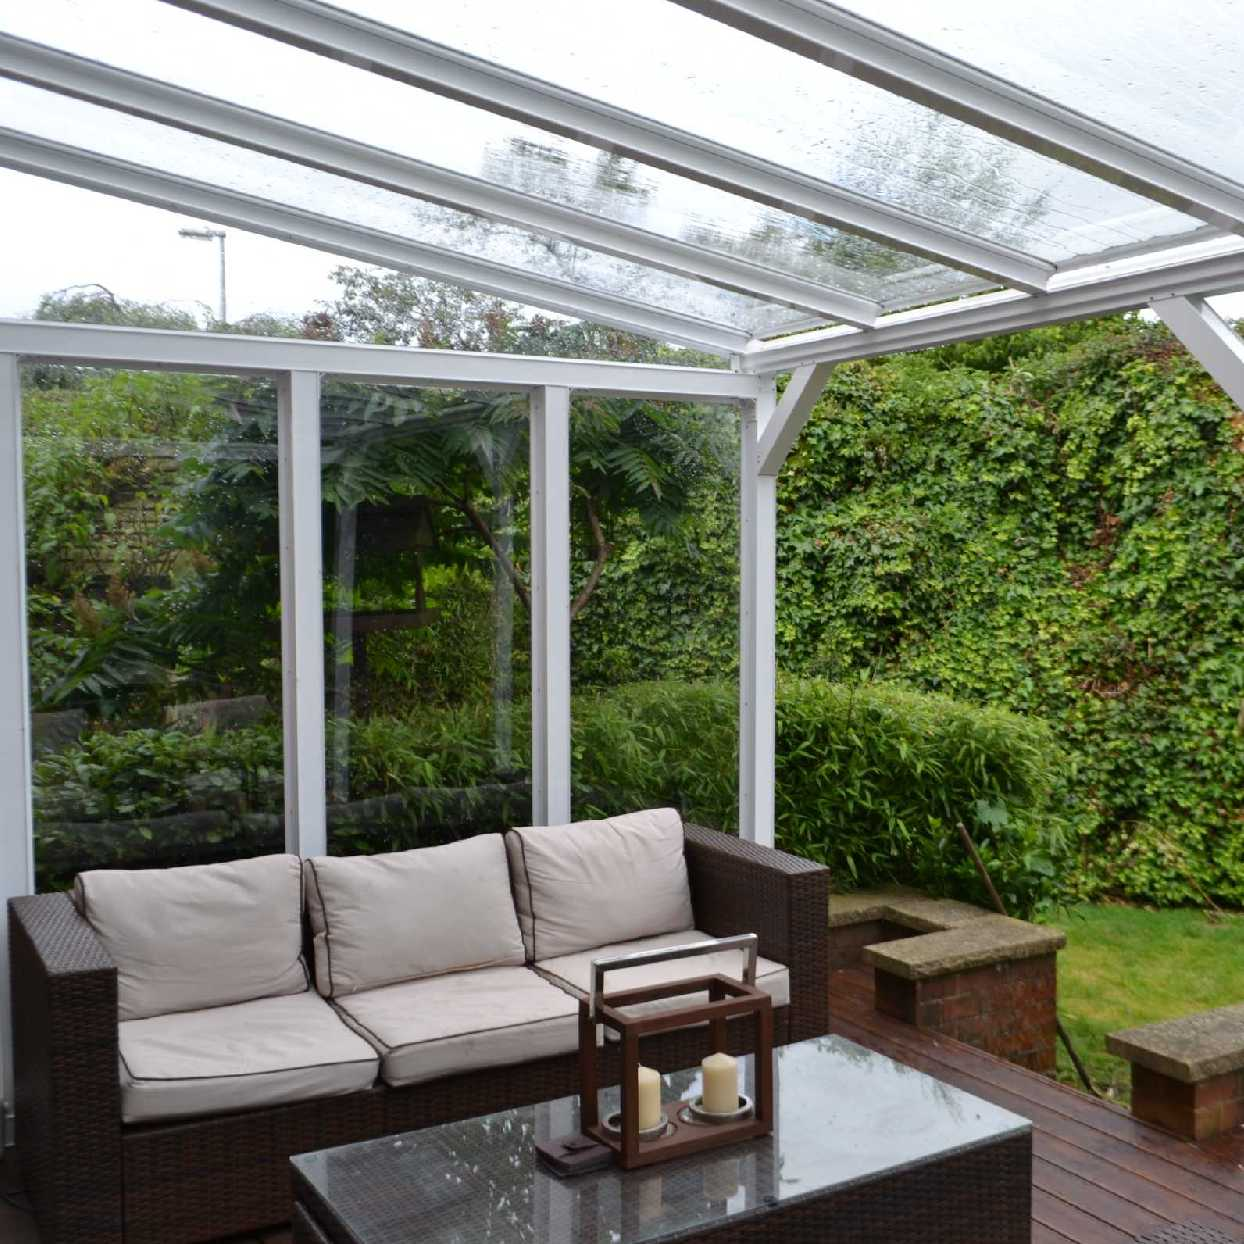 Omega Smart White Lean-To Canopy with 6mm Glass Clear Plate Polycarbonate Glazing - 7.7m (W) x 2.5m (P), (4) Supporting Posts